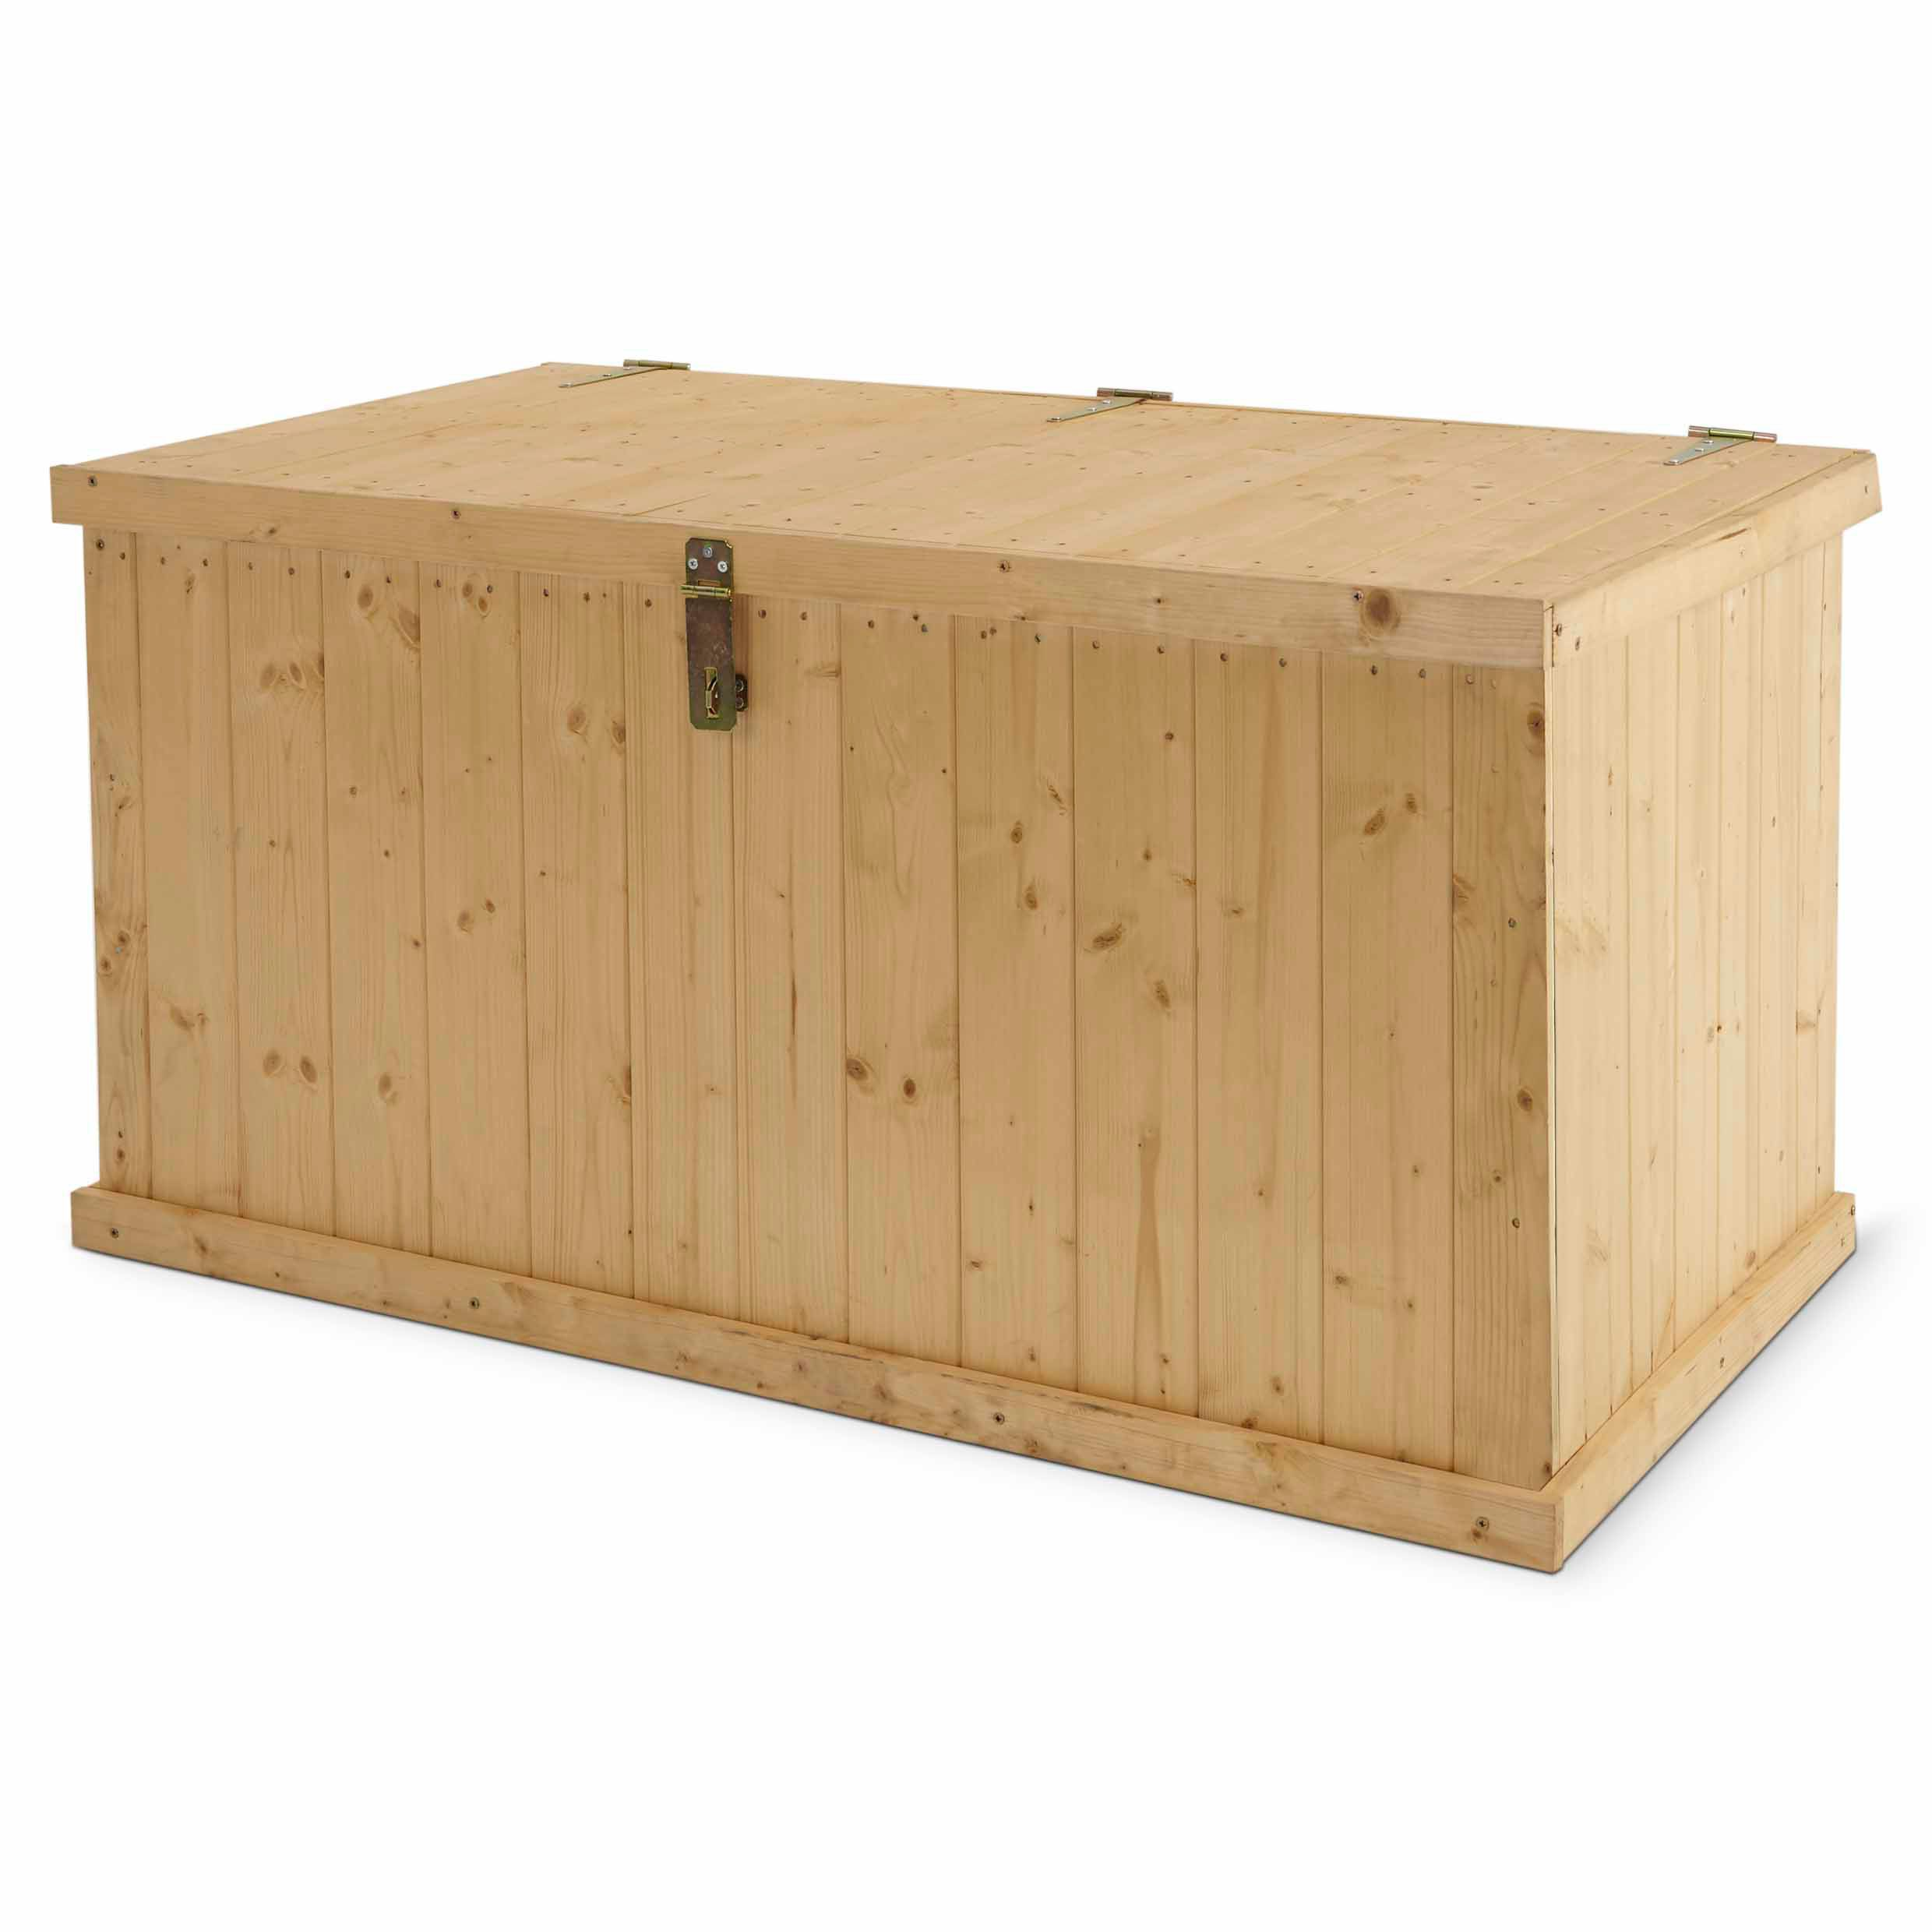 Tongue And Groove B And Q: Bembo Tongue & Groove Wooden Garden Box